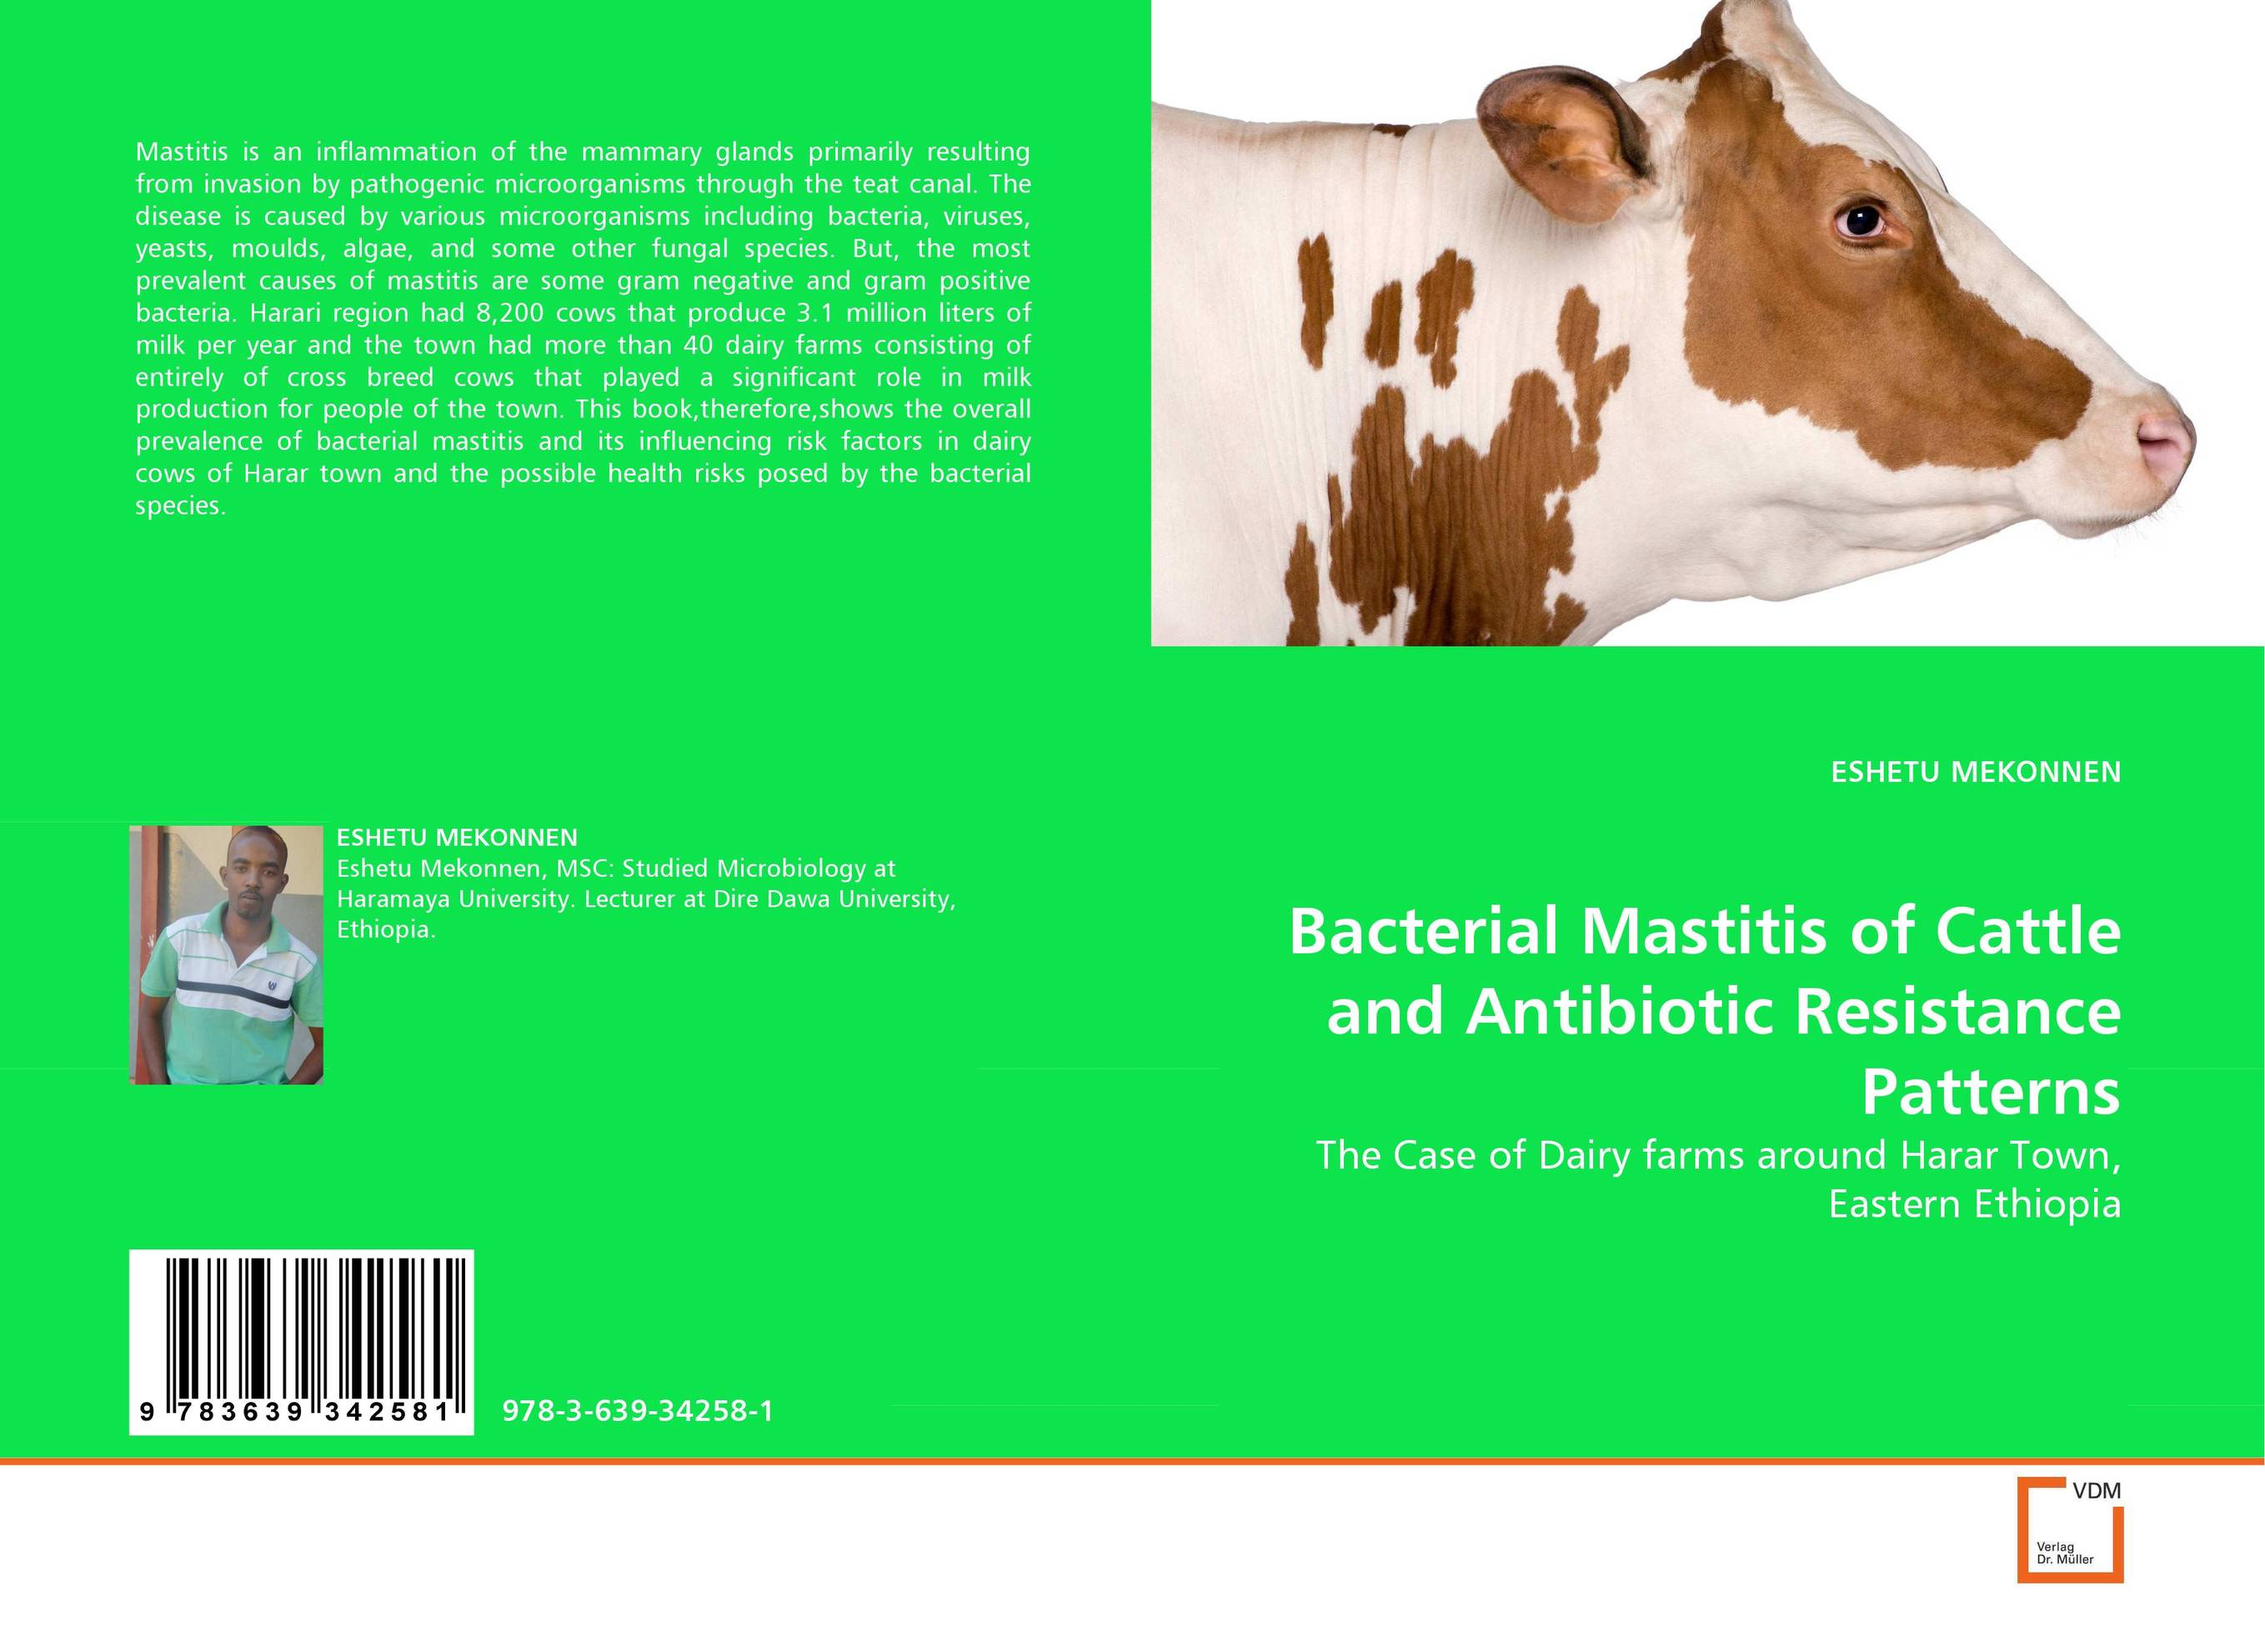 Bacterial Mastitis of Cattle and Antibiotic Resistance Patterns a model for bacterial fungal interactions